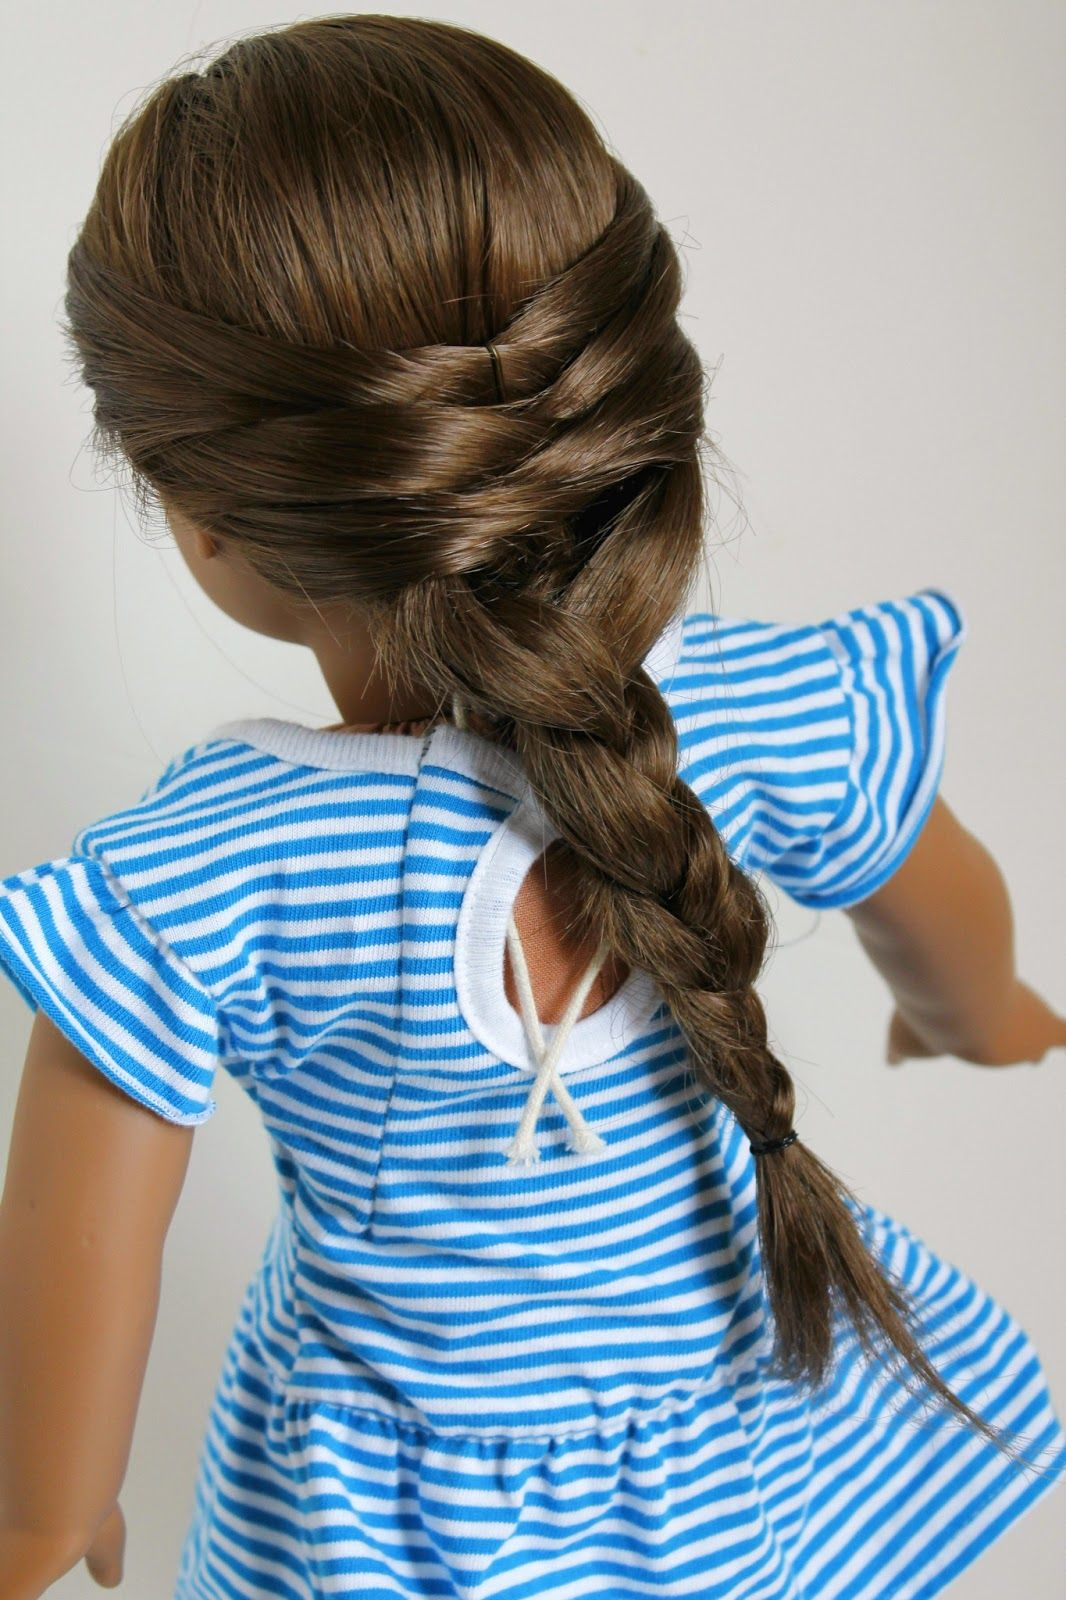 hair style for me doll delight by the spicys a whimsical braid 4468 | 4468fab09e1014fd2adf6e9f8516b85f